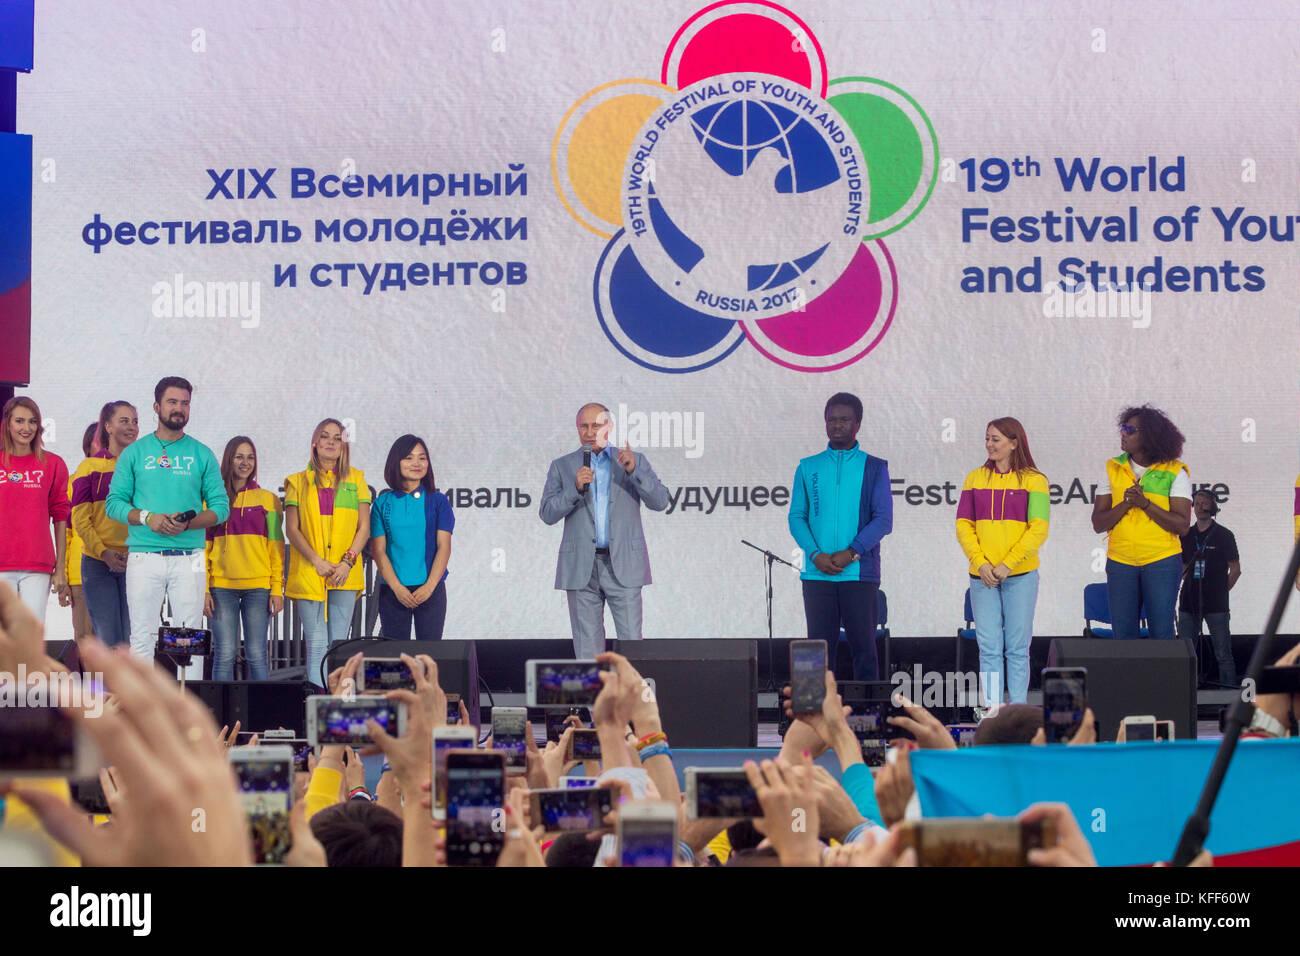 Russia's President Vladimir Putin at the Russia show as part of the 2017 World Festival of Youth and Students - Stock Image